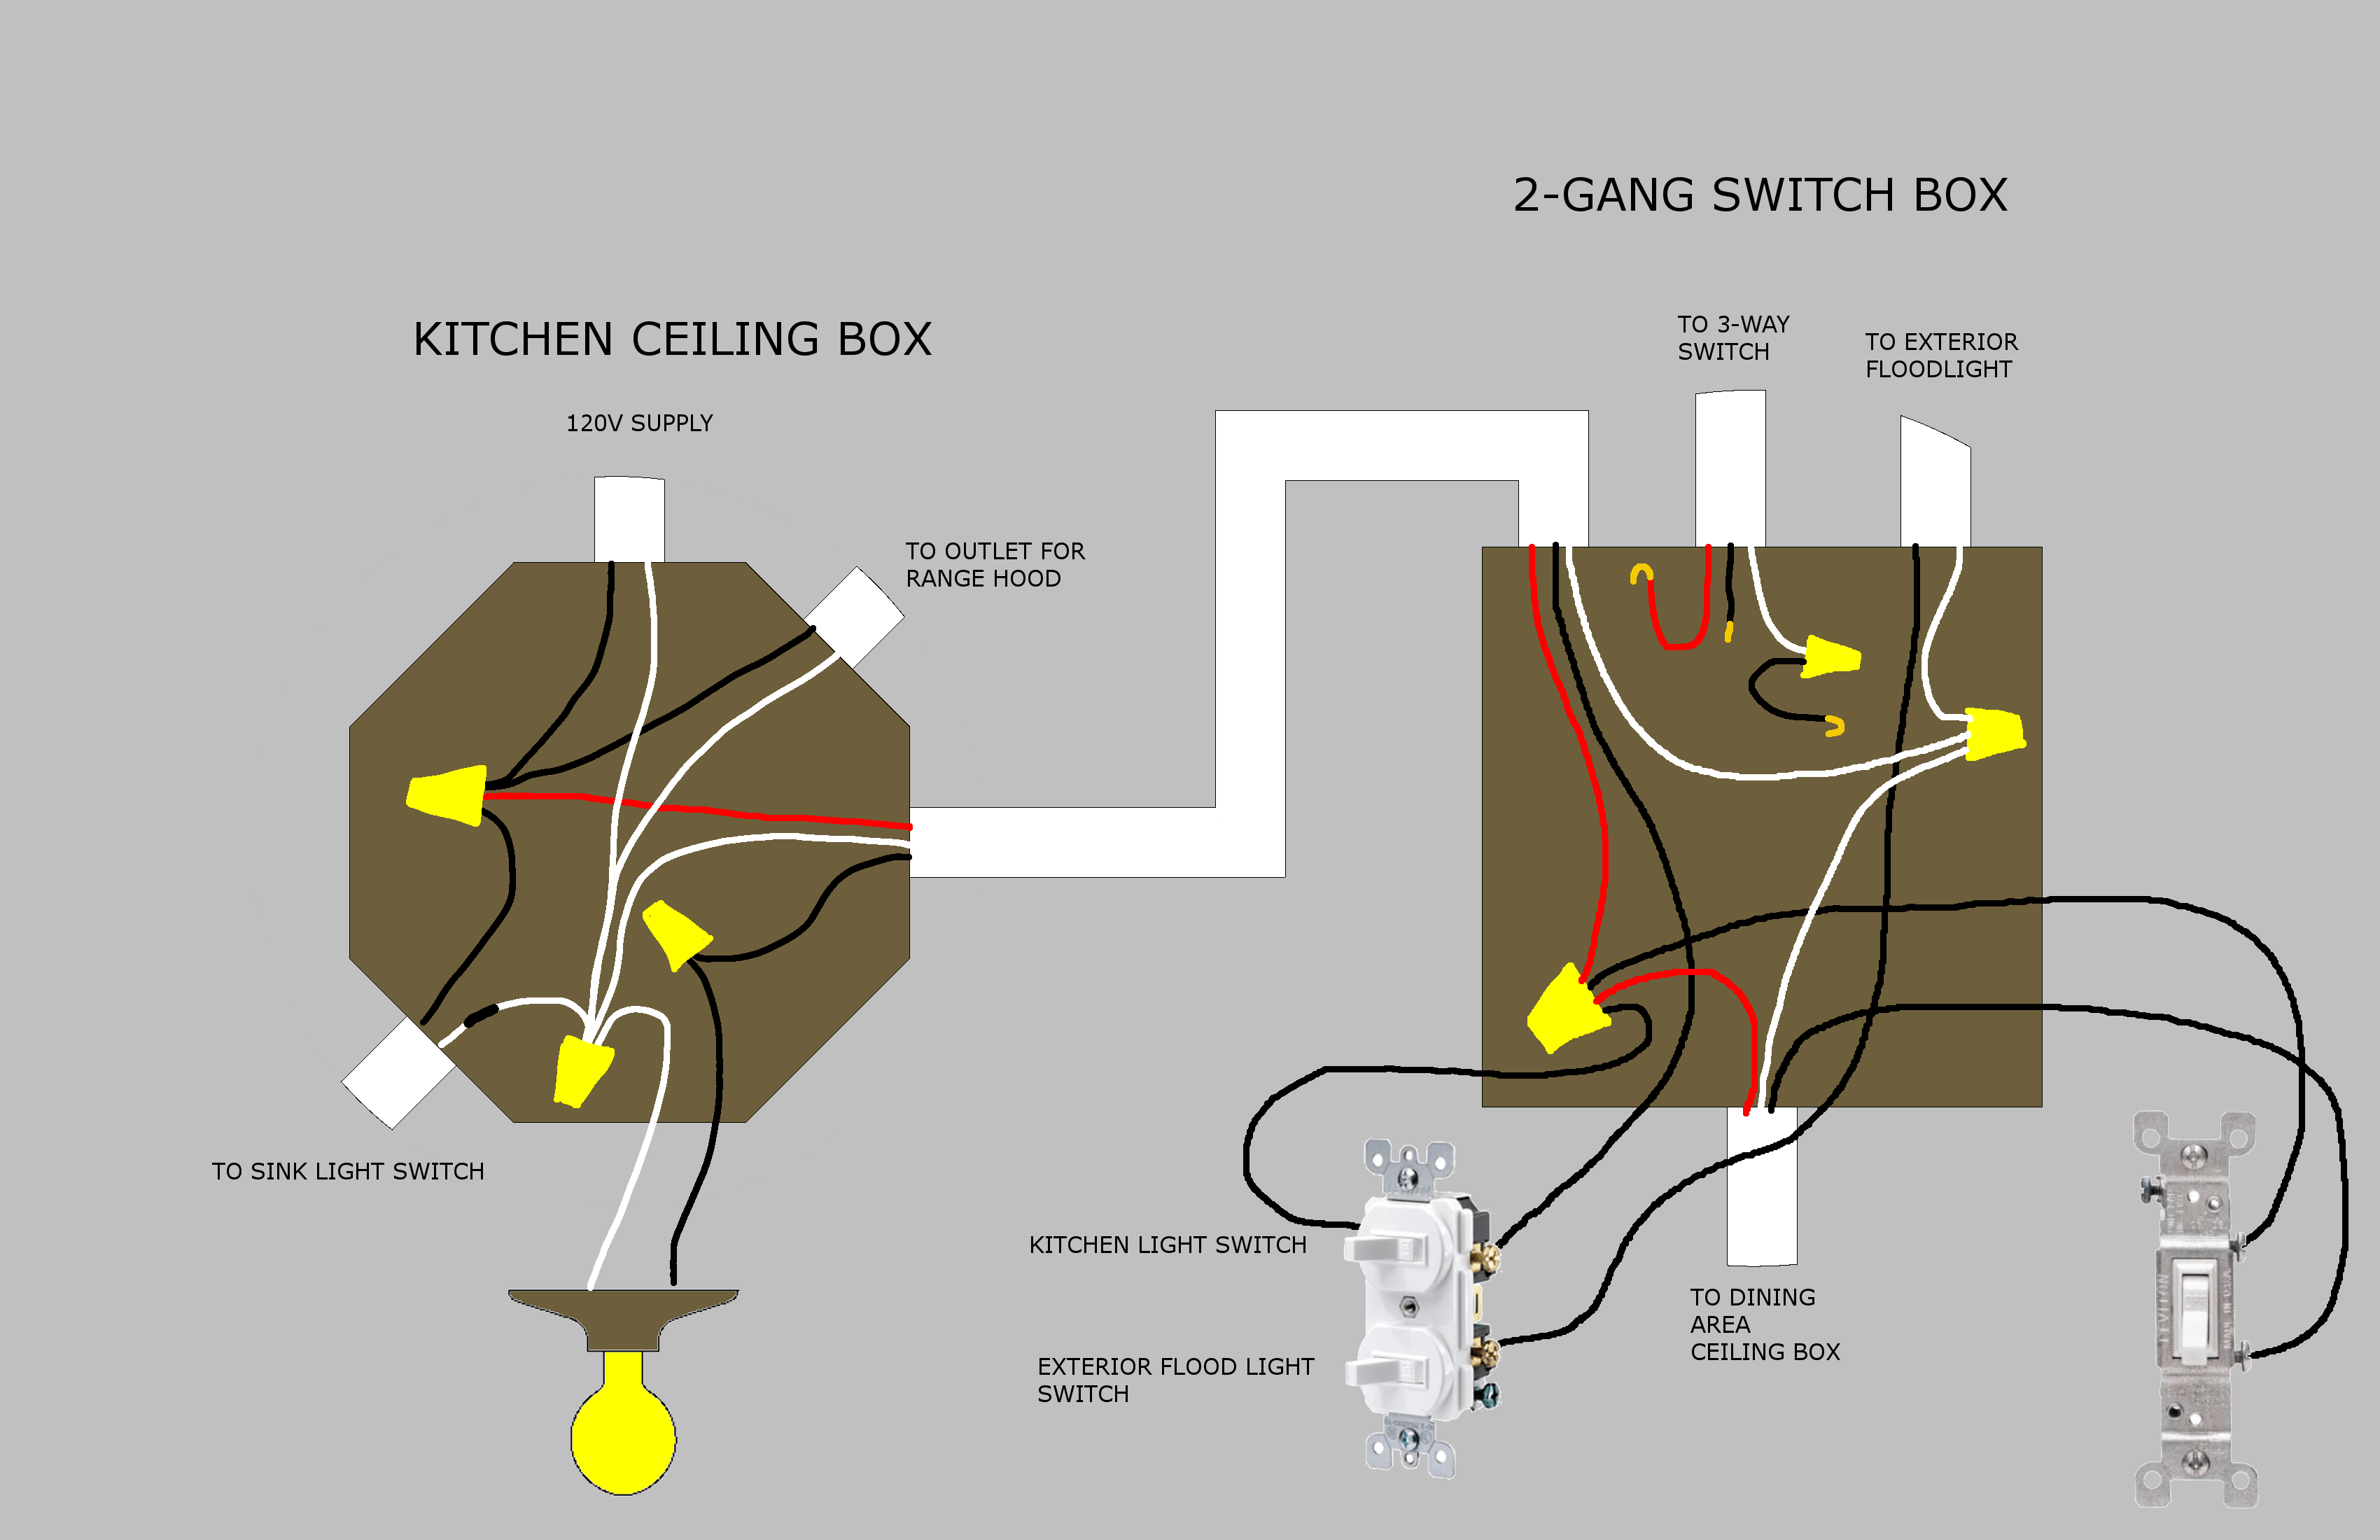 2 gang way light switch wiring diagram kicker cvr electrical is this ceiling box correct and how